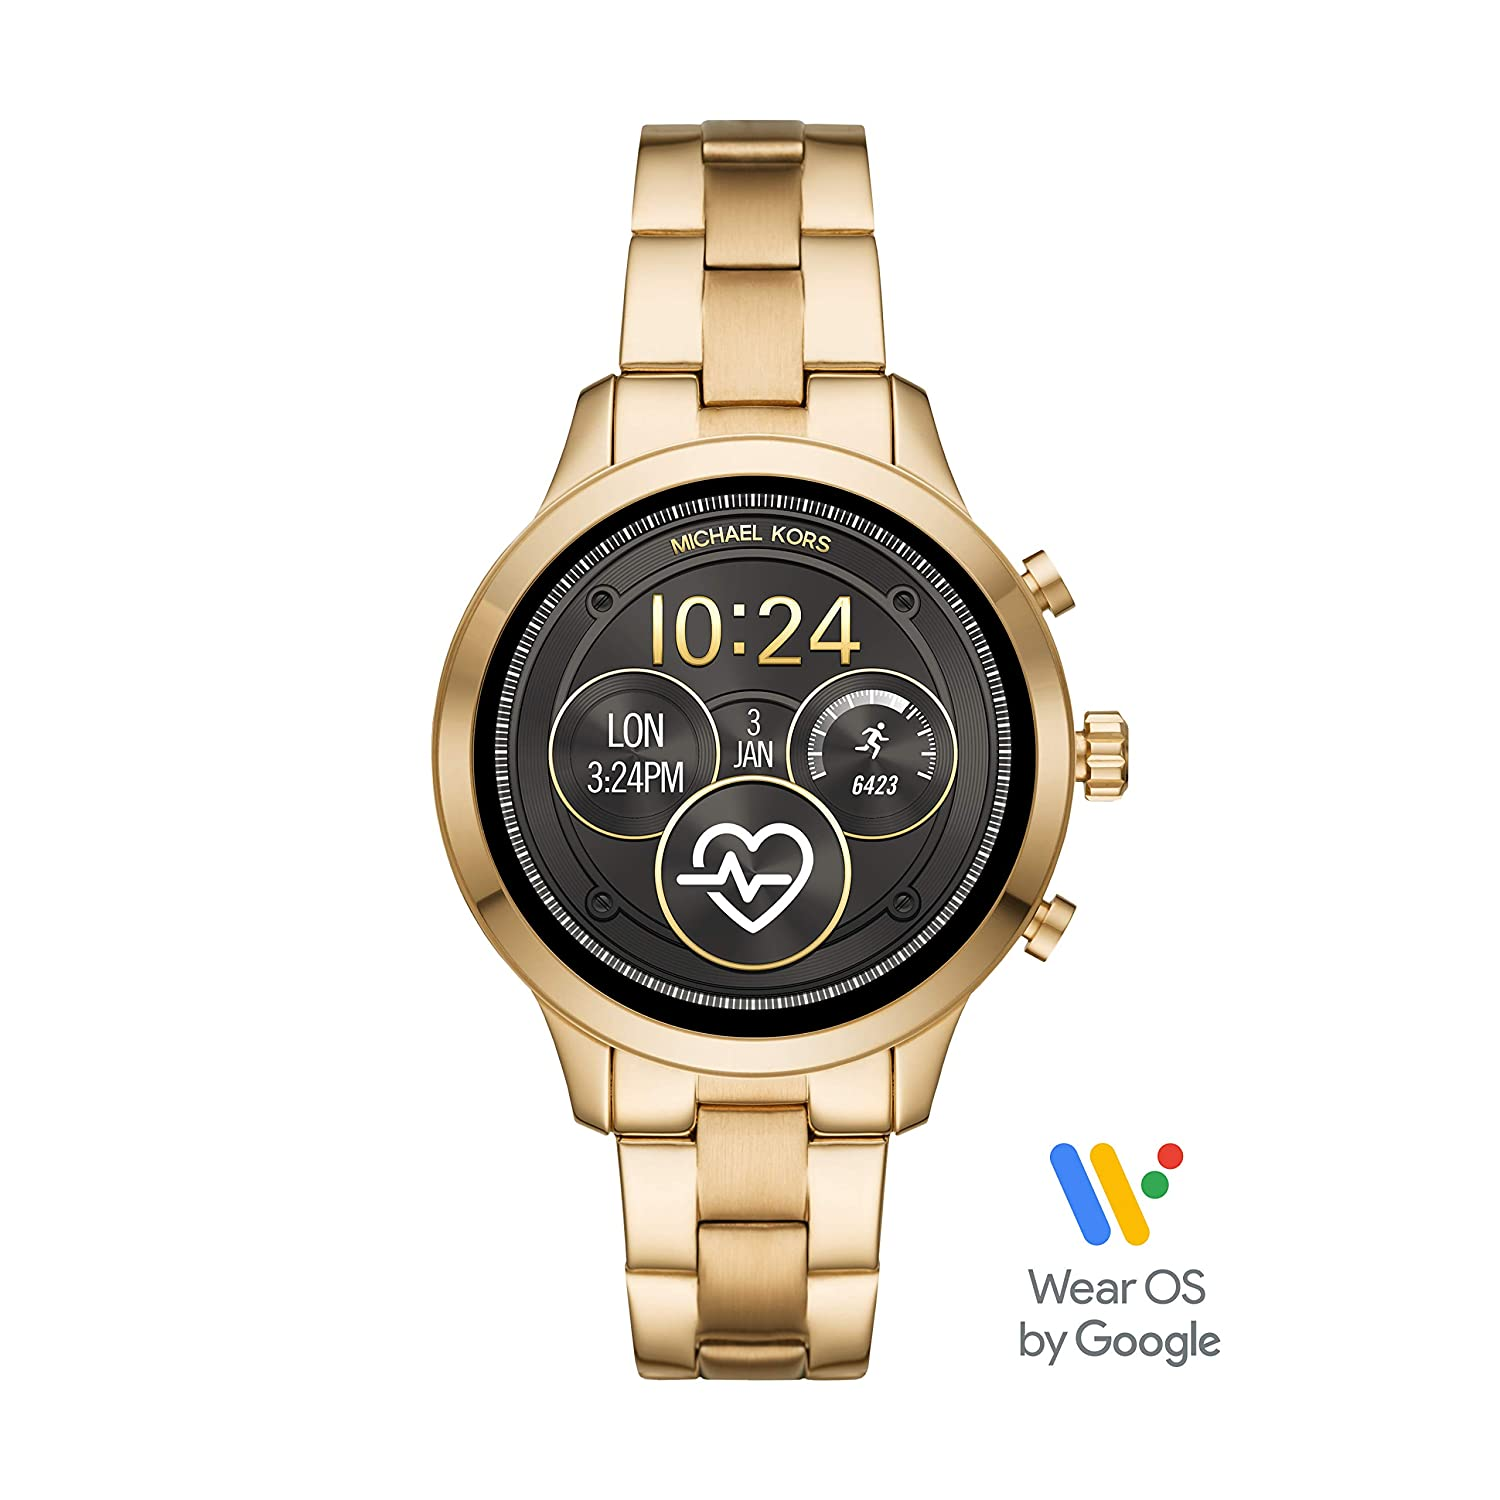 Michael Kors Access Runway Smartwatch Powered with Wear OS by Google with Heart Rate, GPS, NFC, and Smartphone Notifications